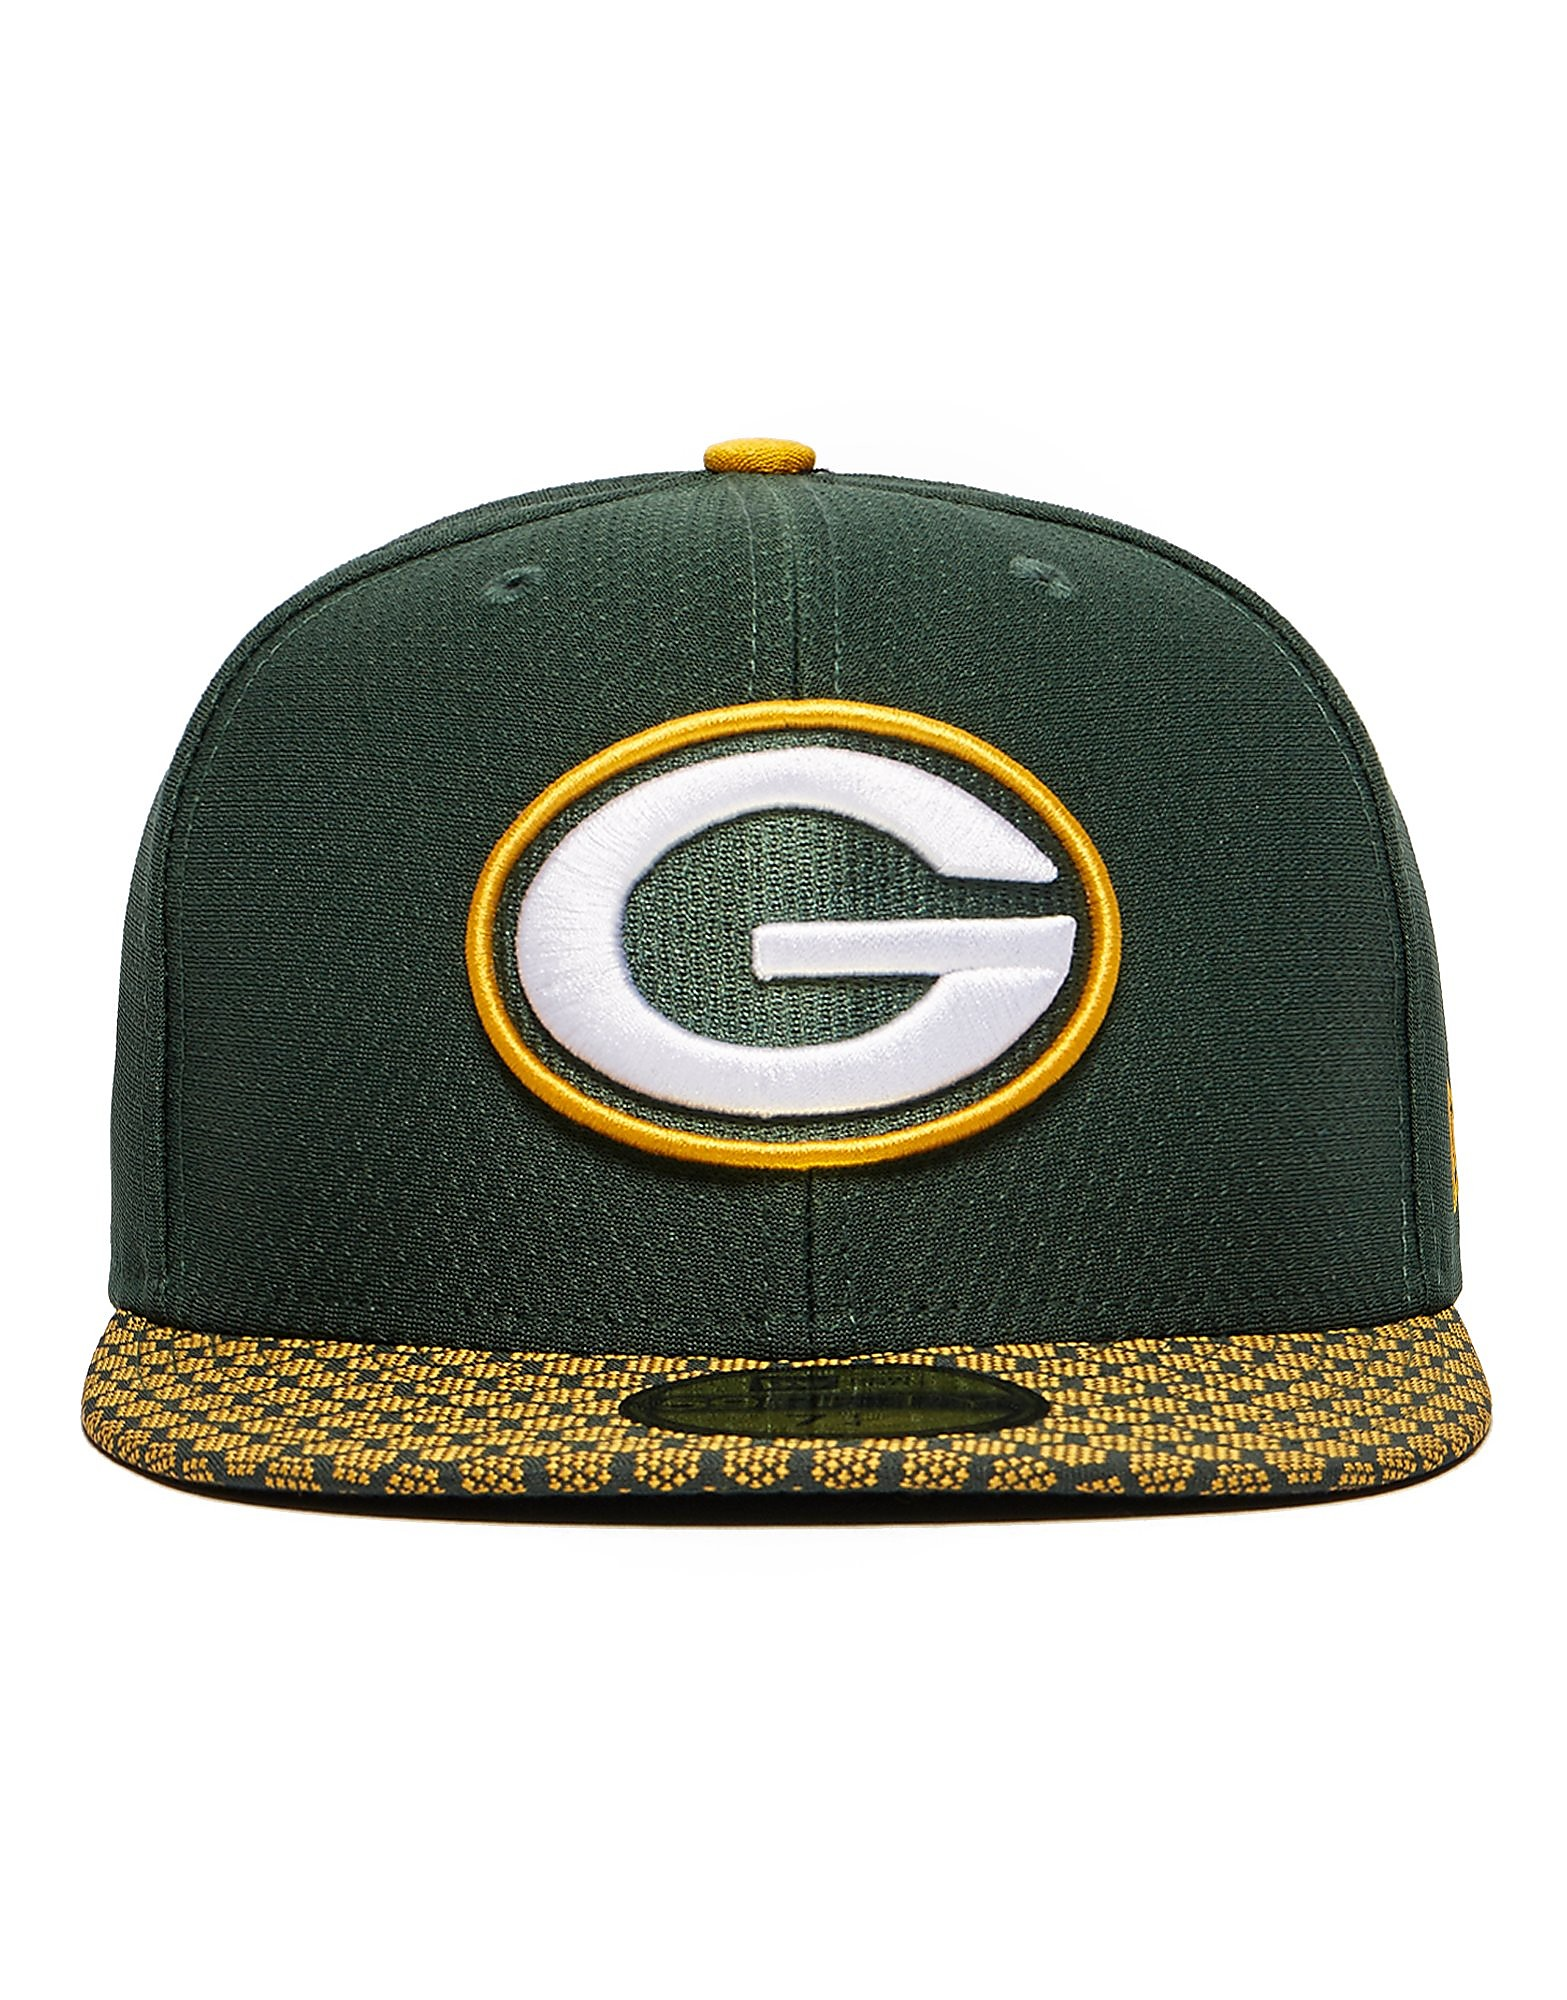 New Era Casquette Green Bay Packers 59Fifty